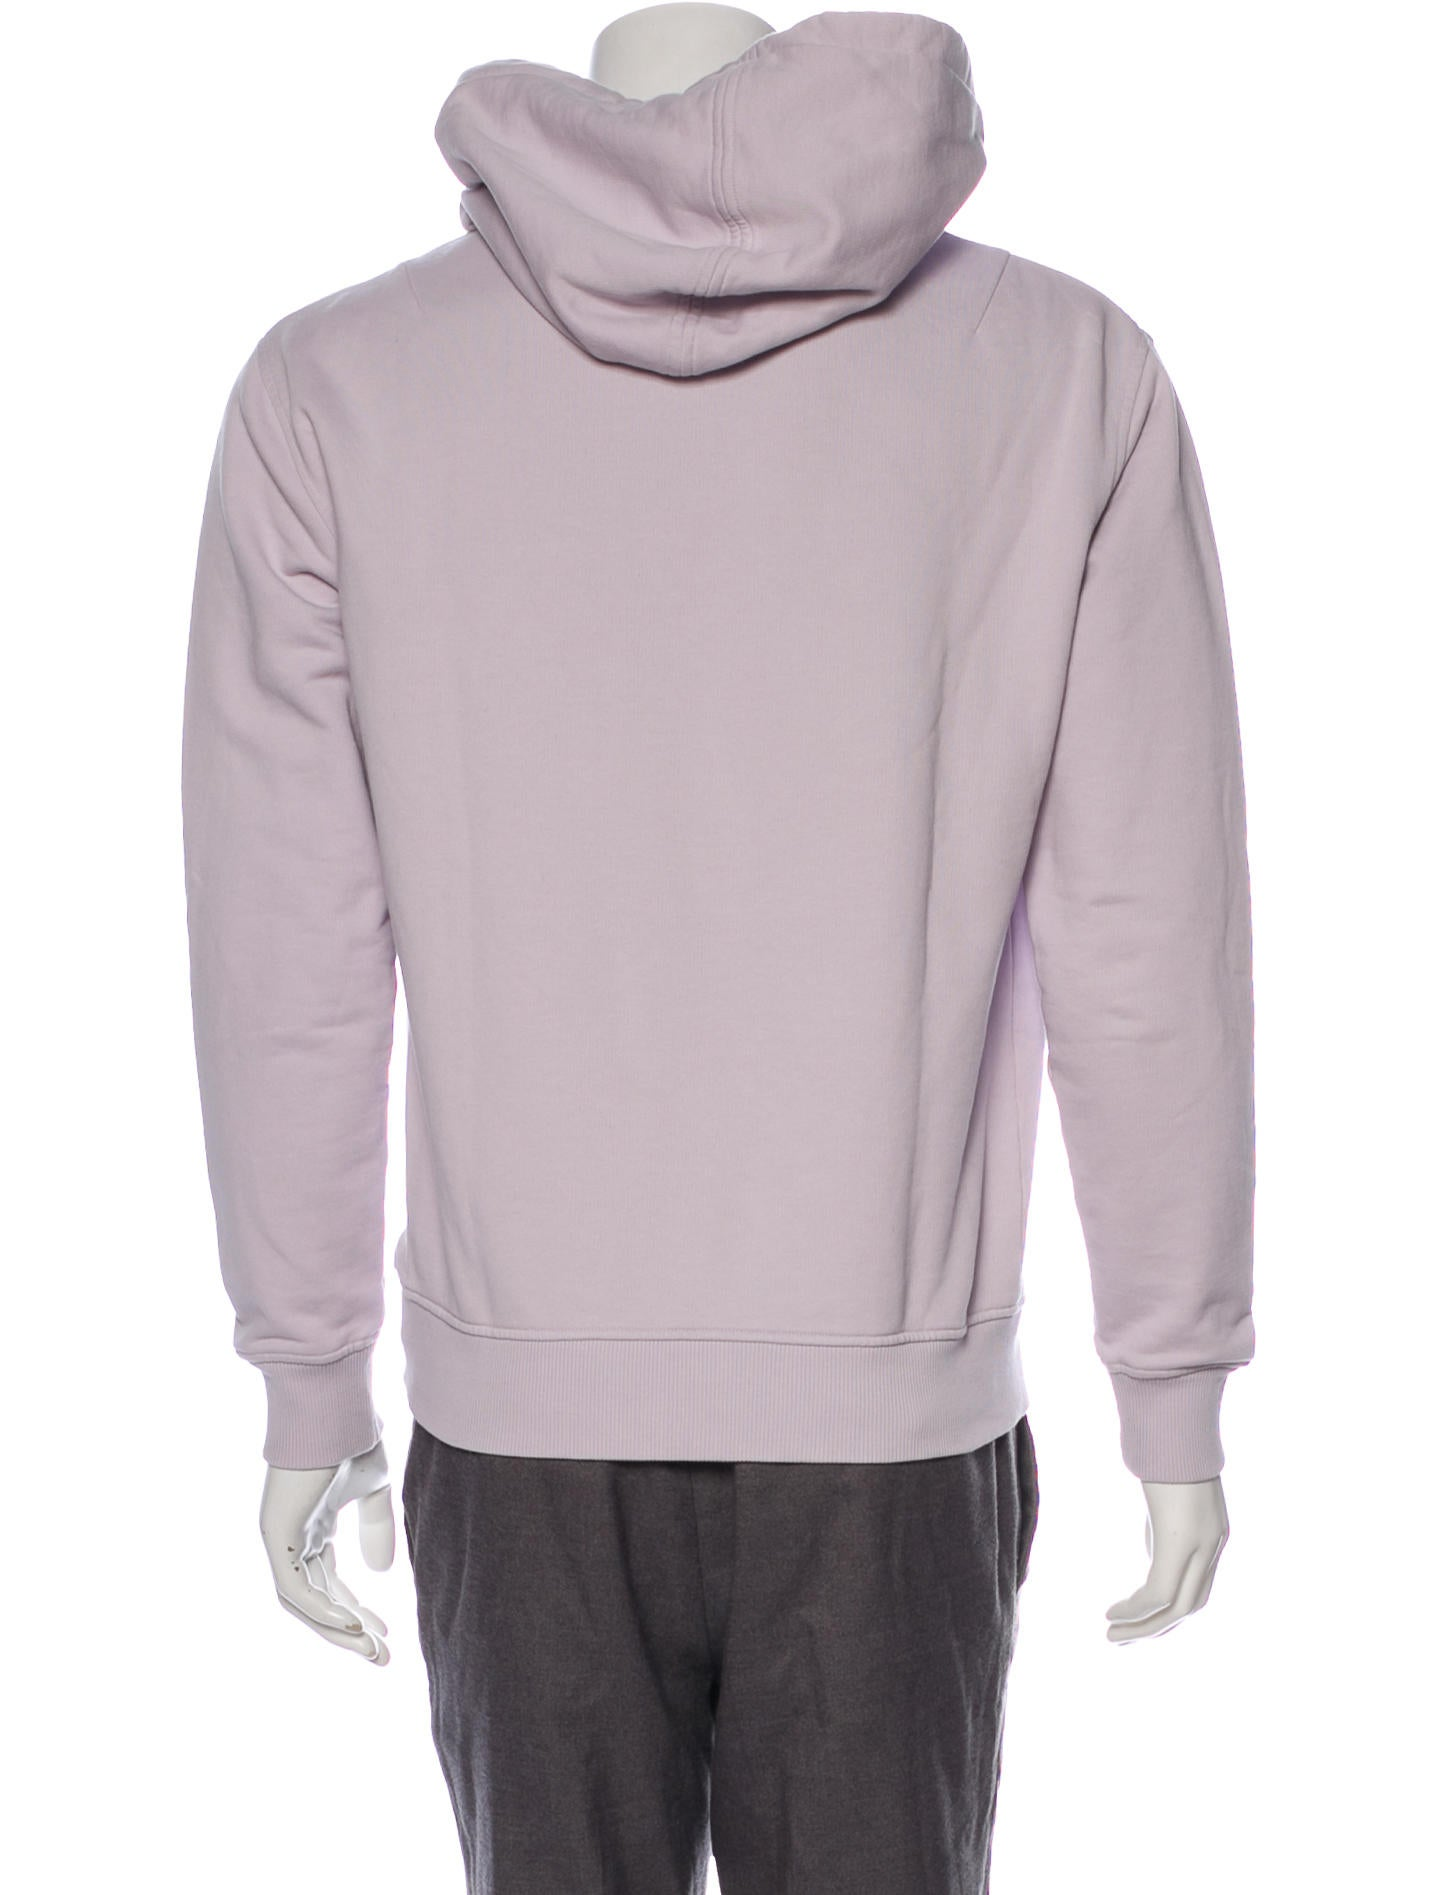 AMI Alexandre Mattiussi Embroidered Woven Hoodie Clothing